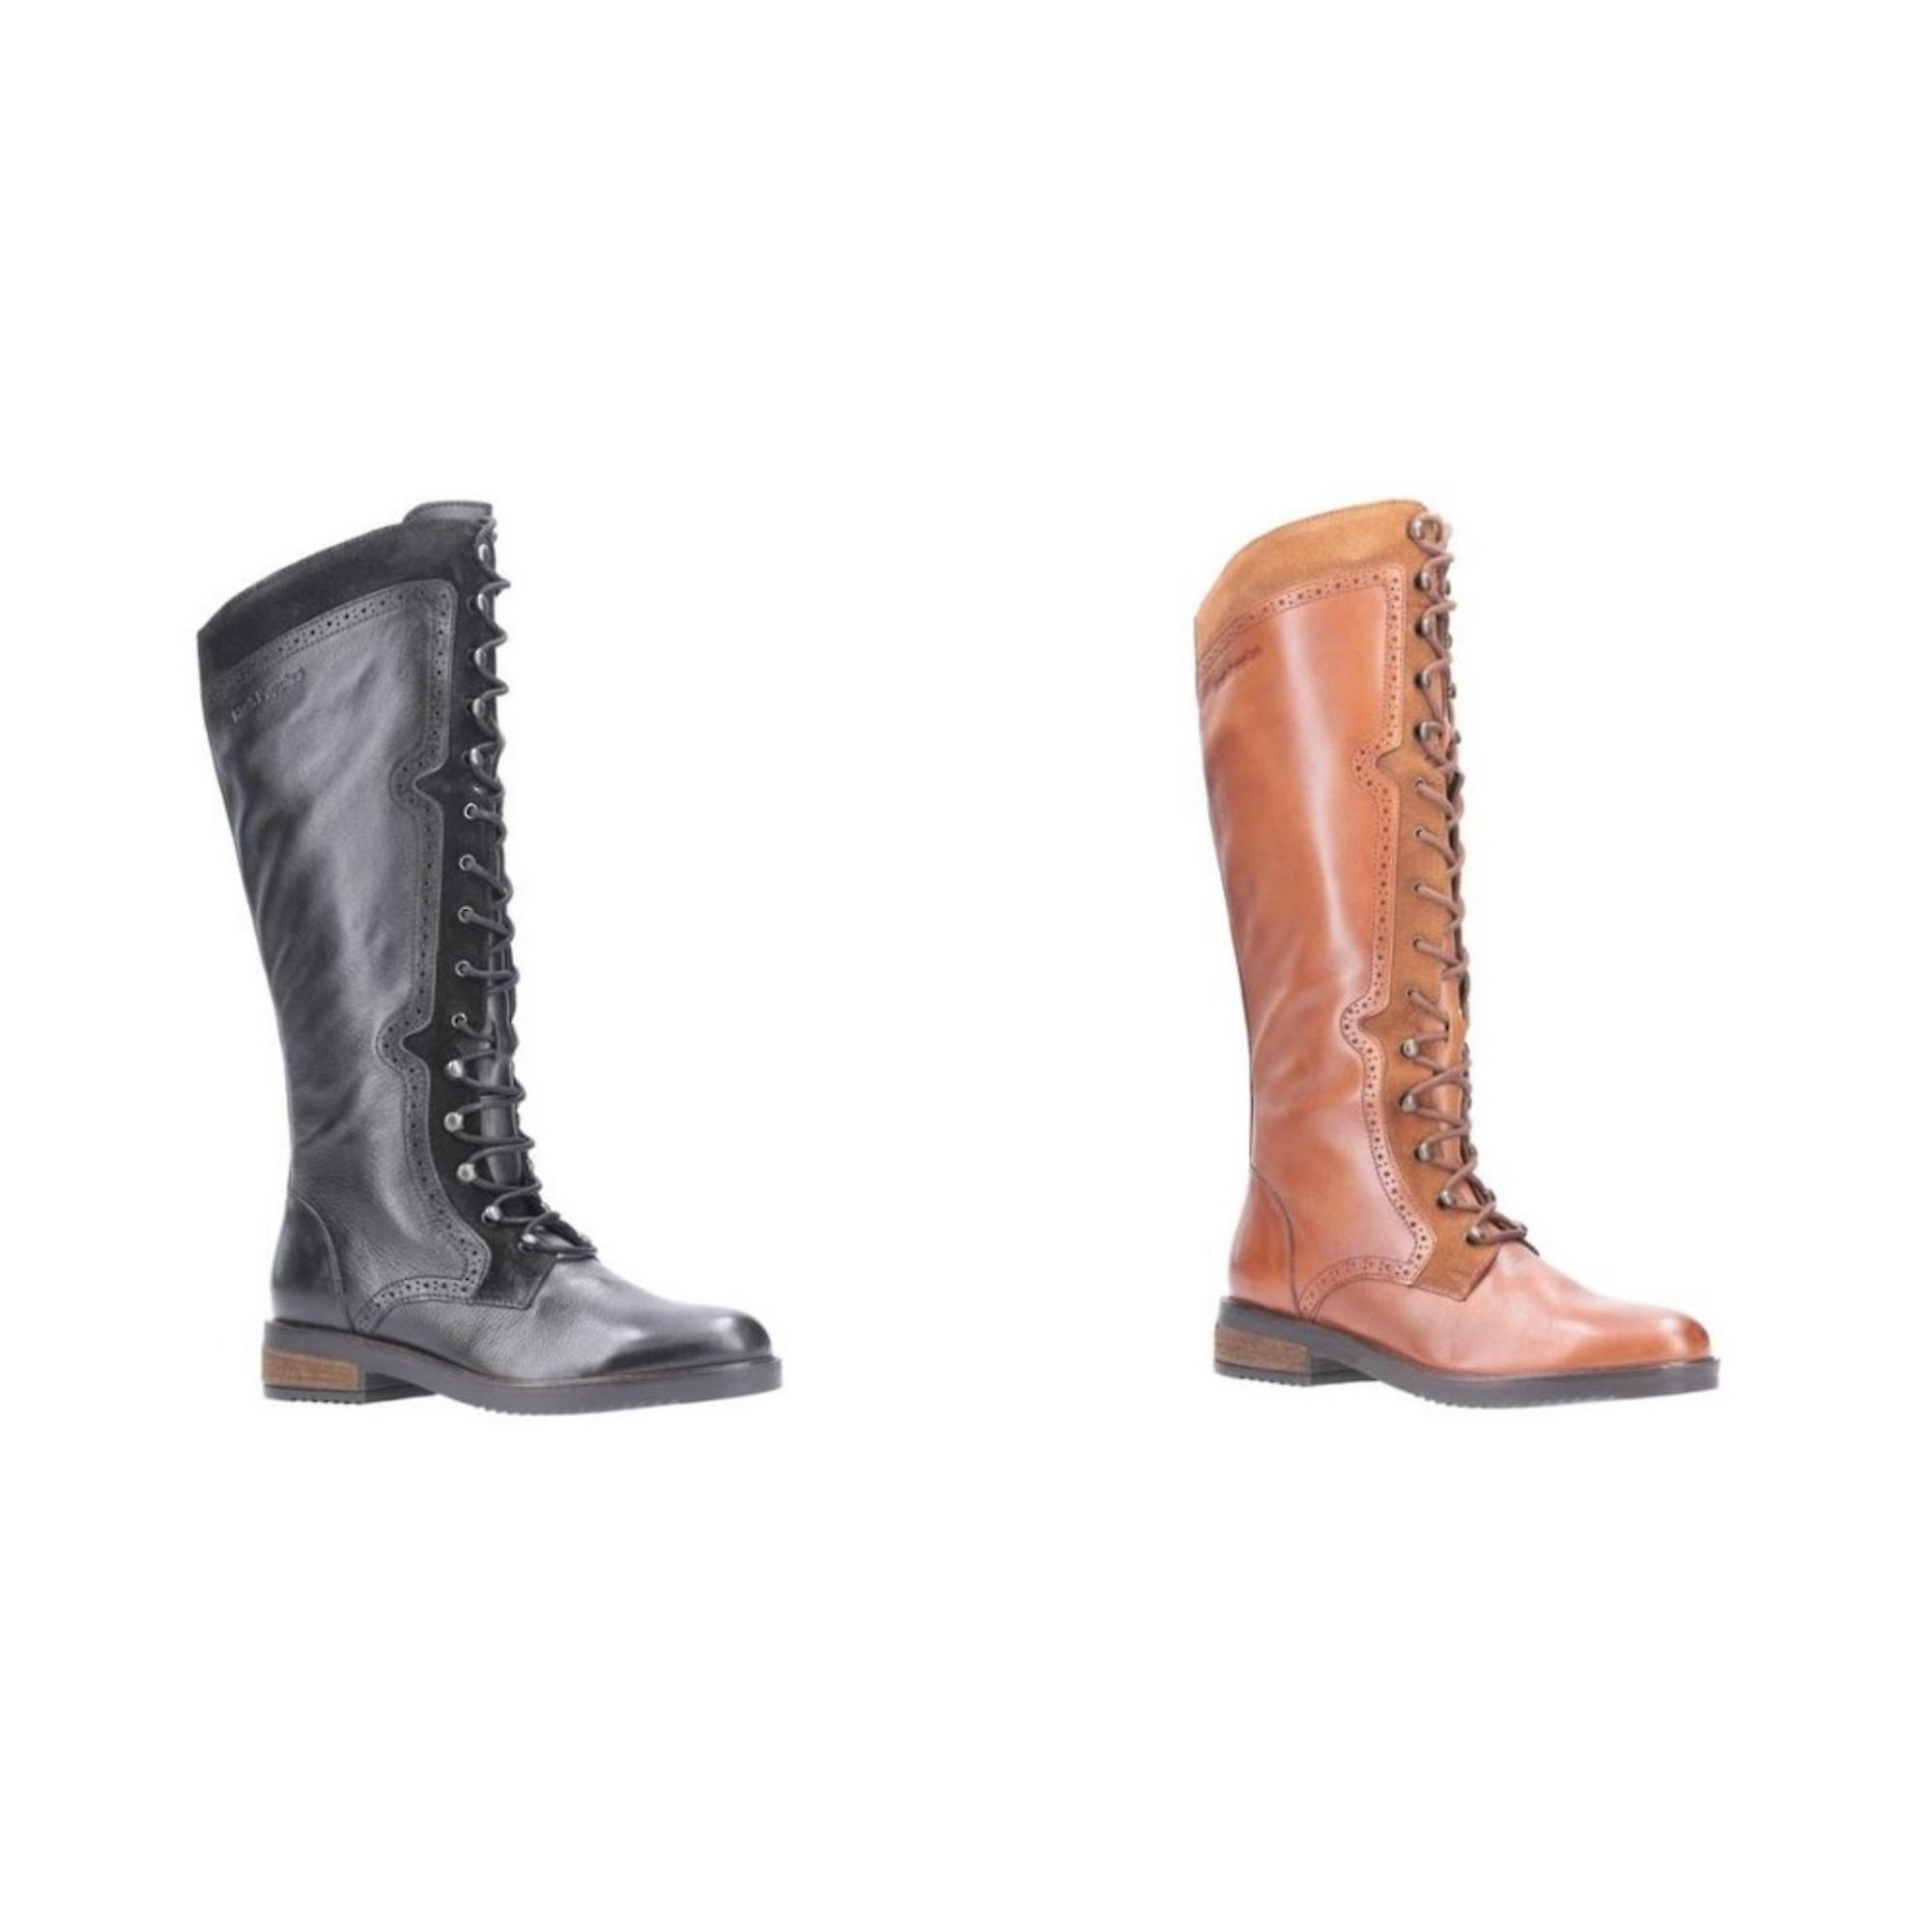 Hush Puppies Womens/Ladies Rudy Lace Up Long Leather Boot zhcZ2